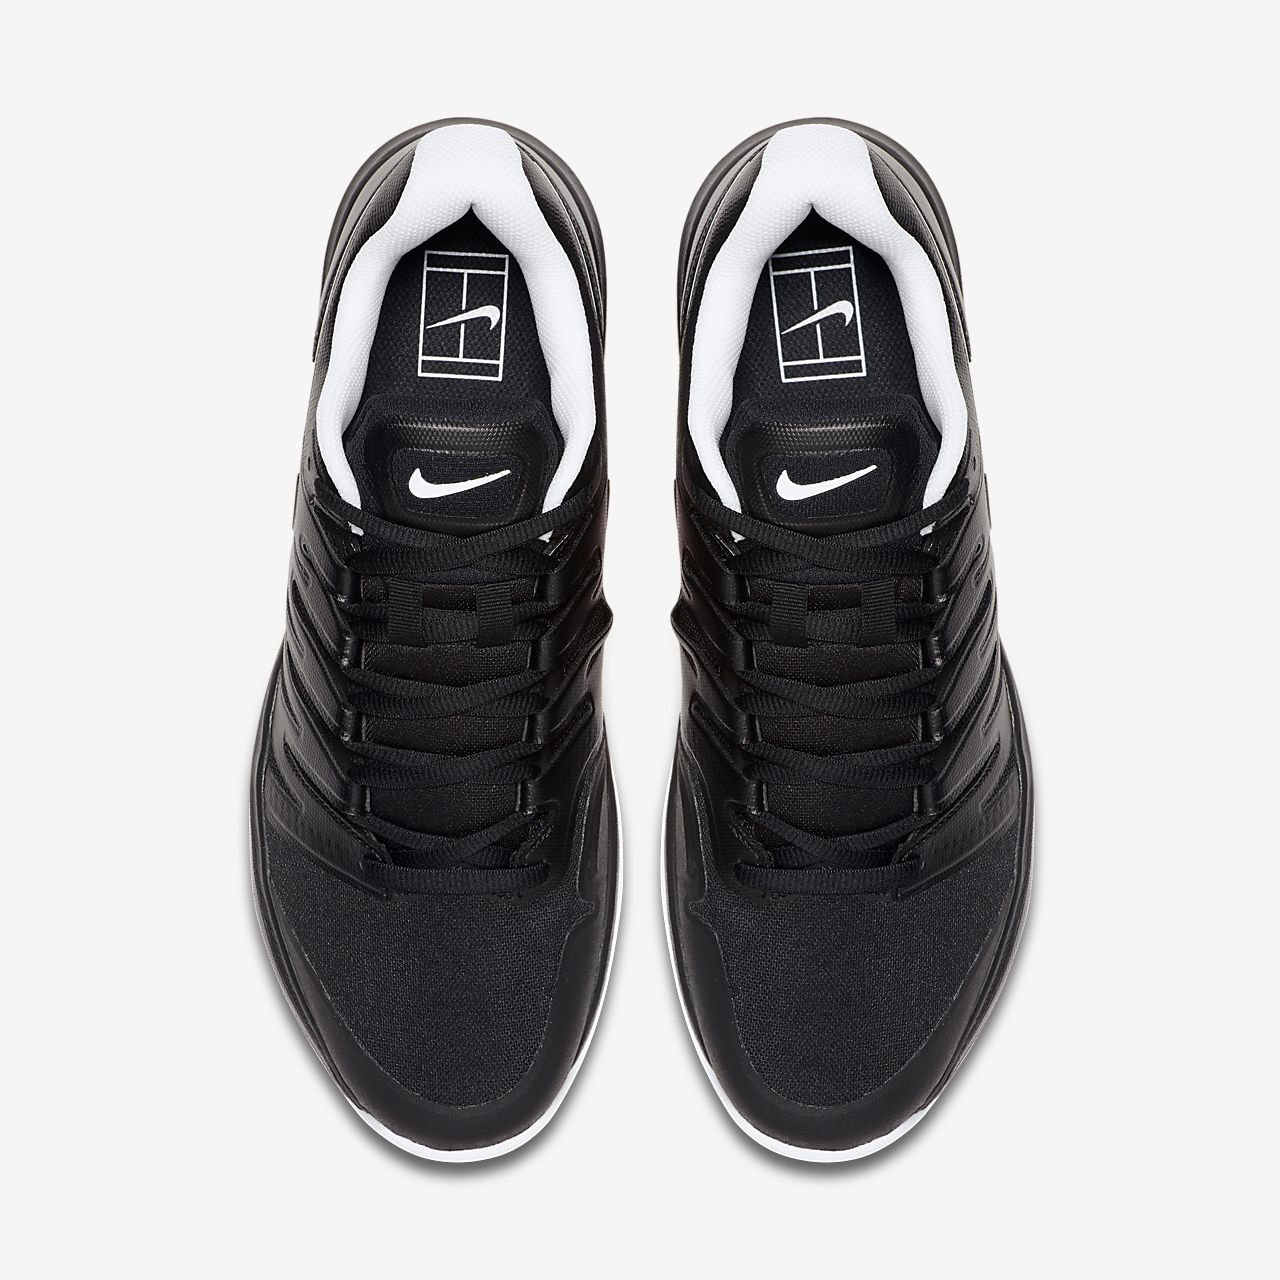 9747c5026703a Nike Air Zoom Prestige Clay Men s Tennis Shoe. Nike.com LU